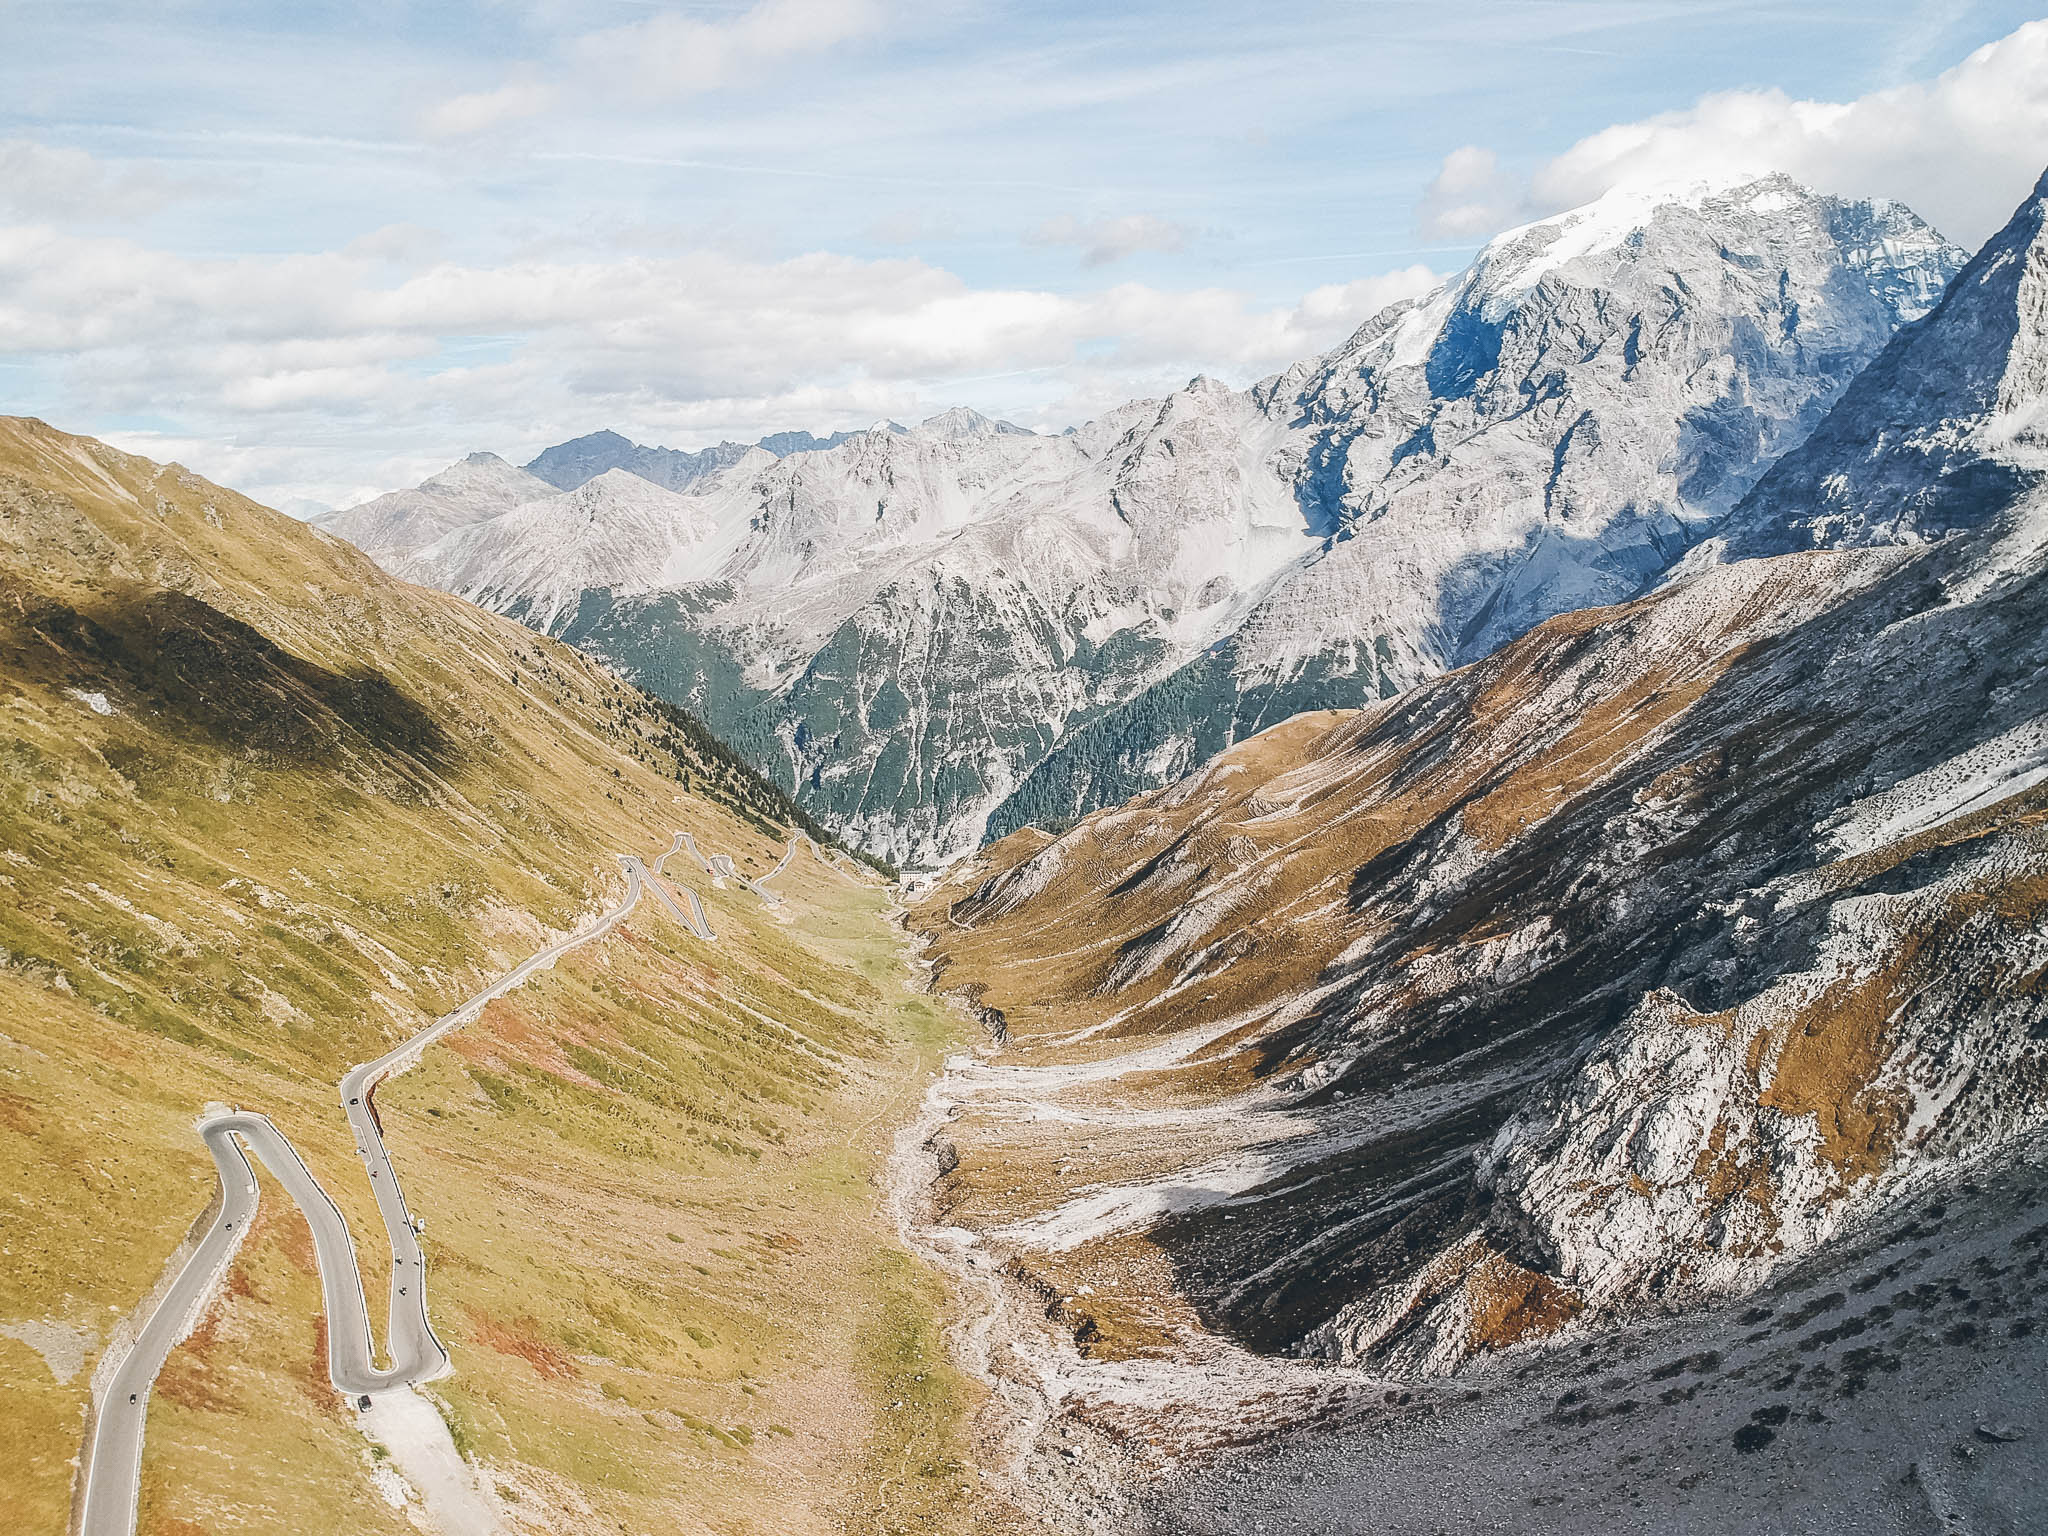 Motul roads: The Stelvio Pass